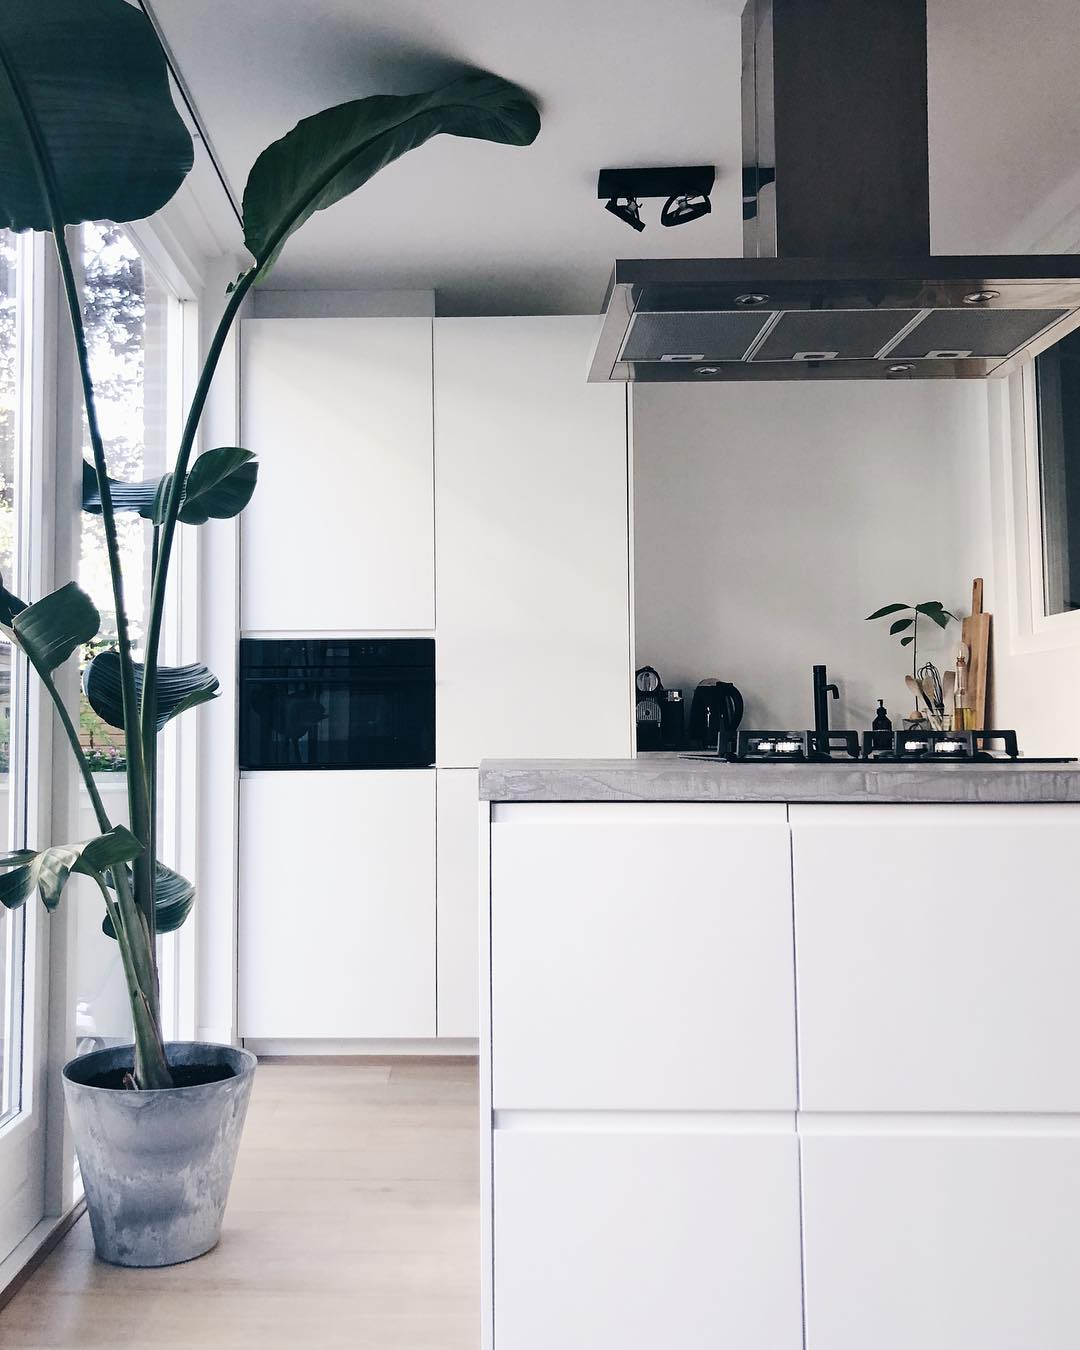 197 Instagram interieur inspiratie top 5